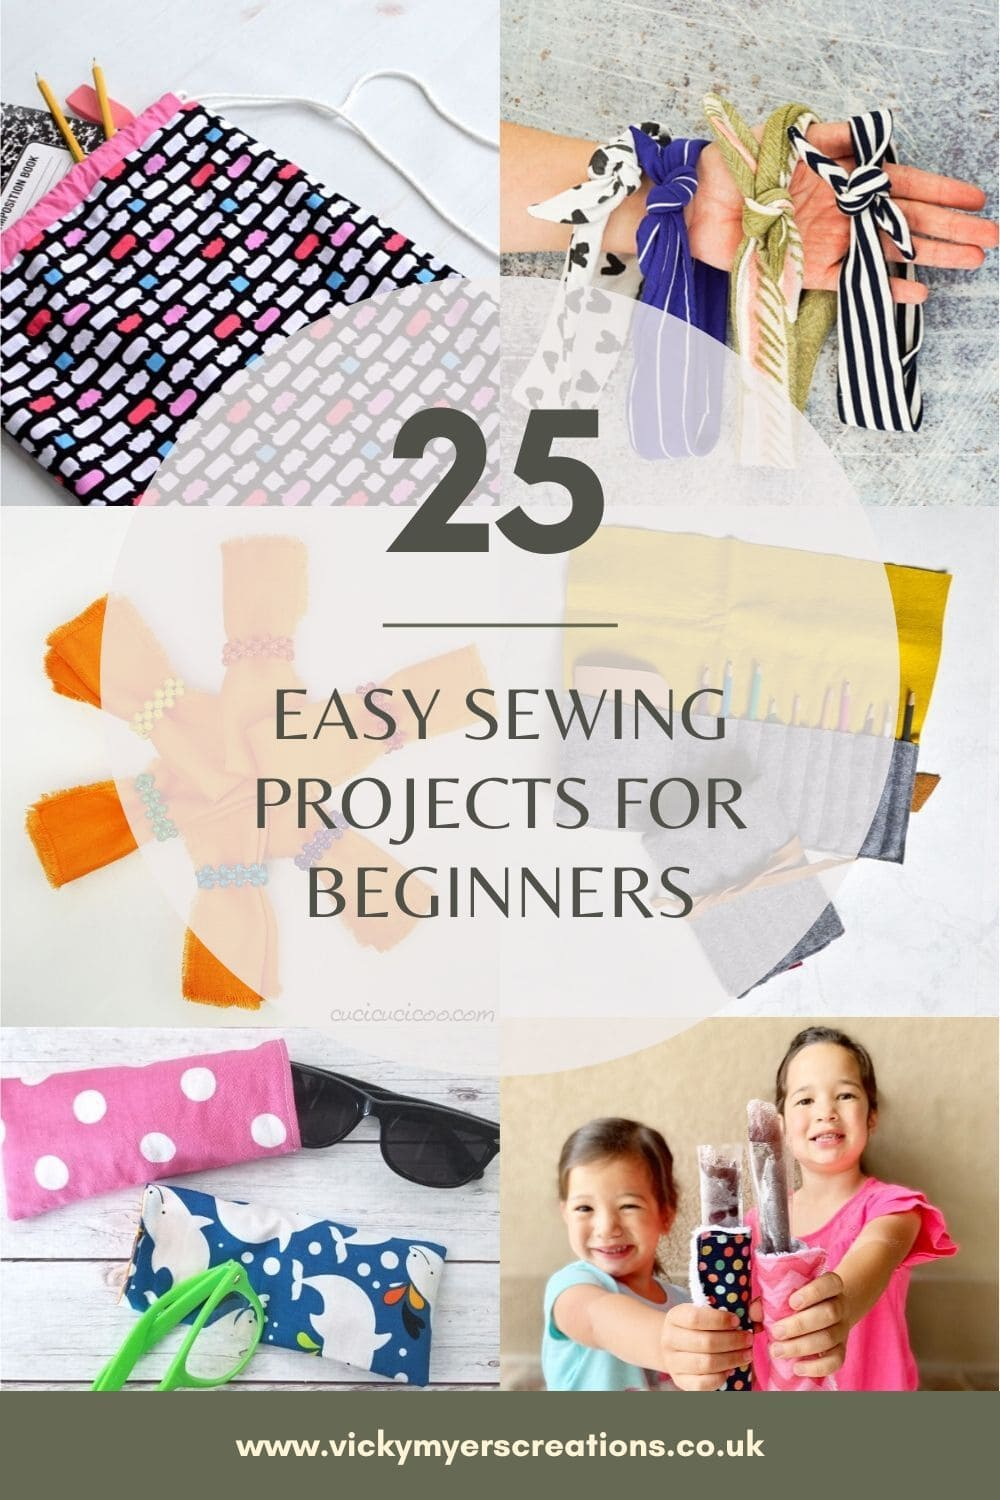 Fabulous range of easy sewing projects perfect for the beginner, let's get inspired, dust down out sewing machines and make something!